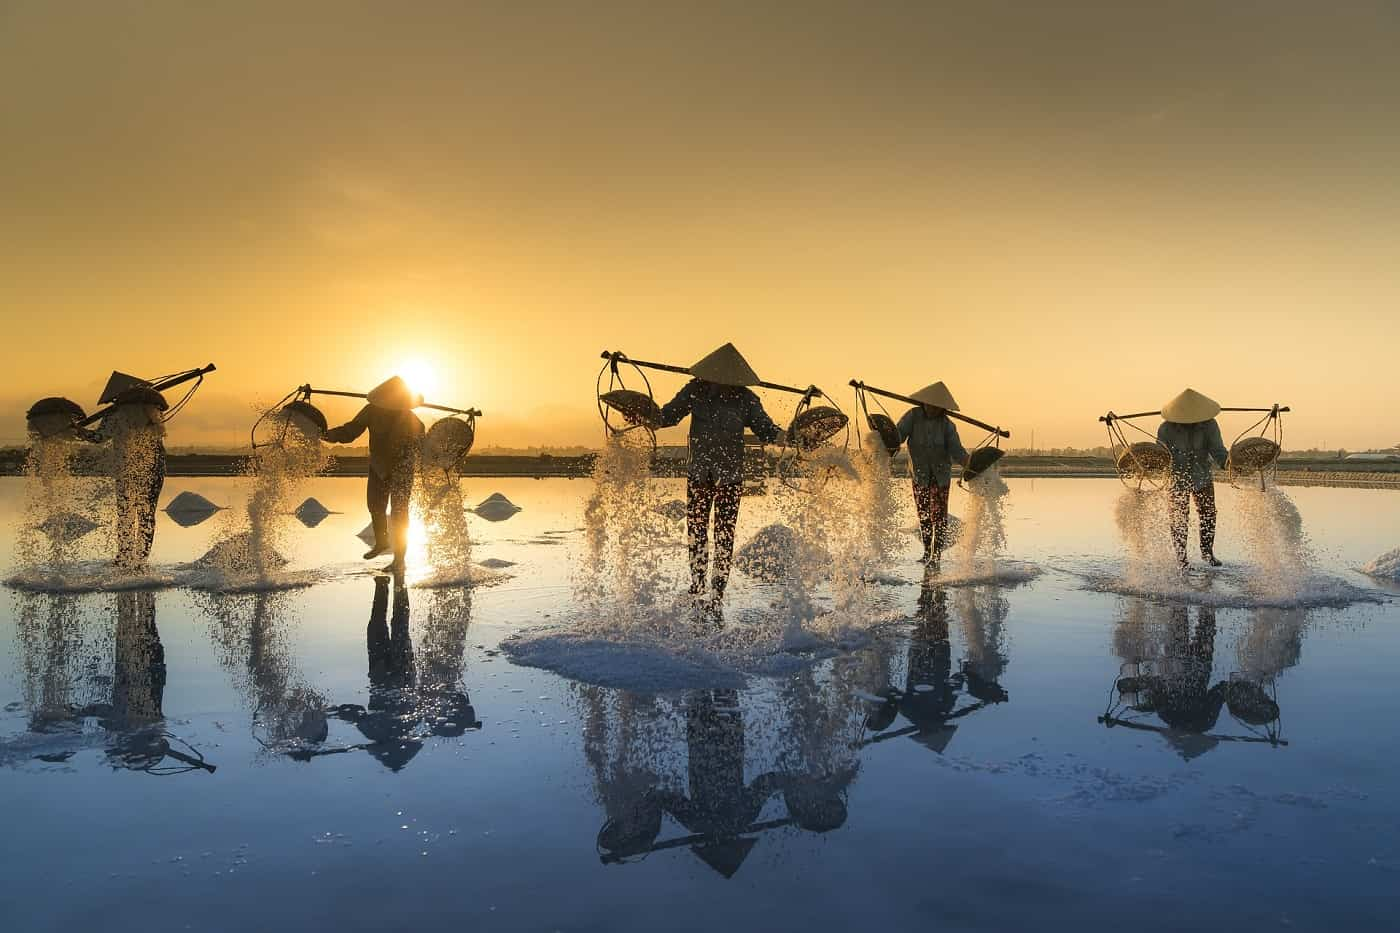 A few people harvesting salt from water